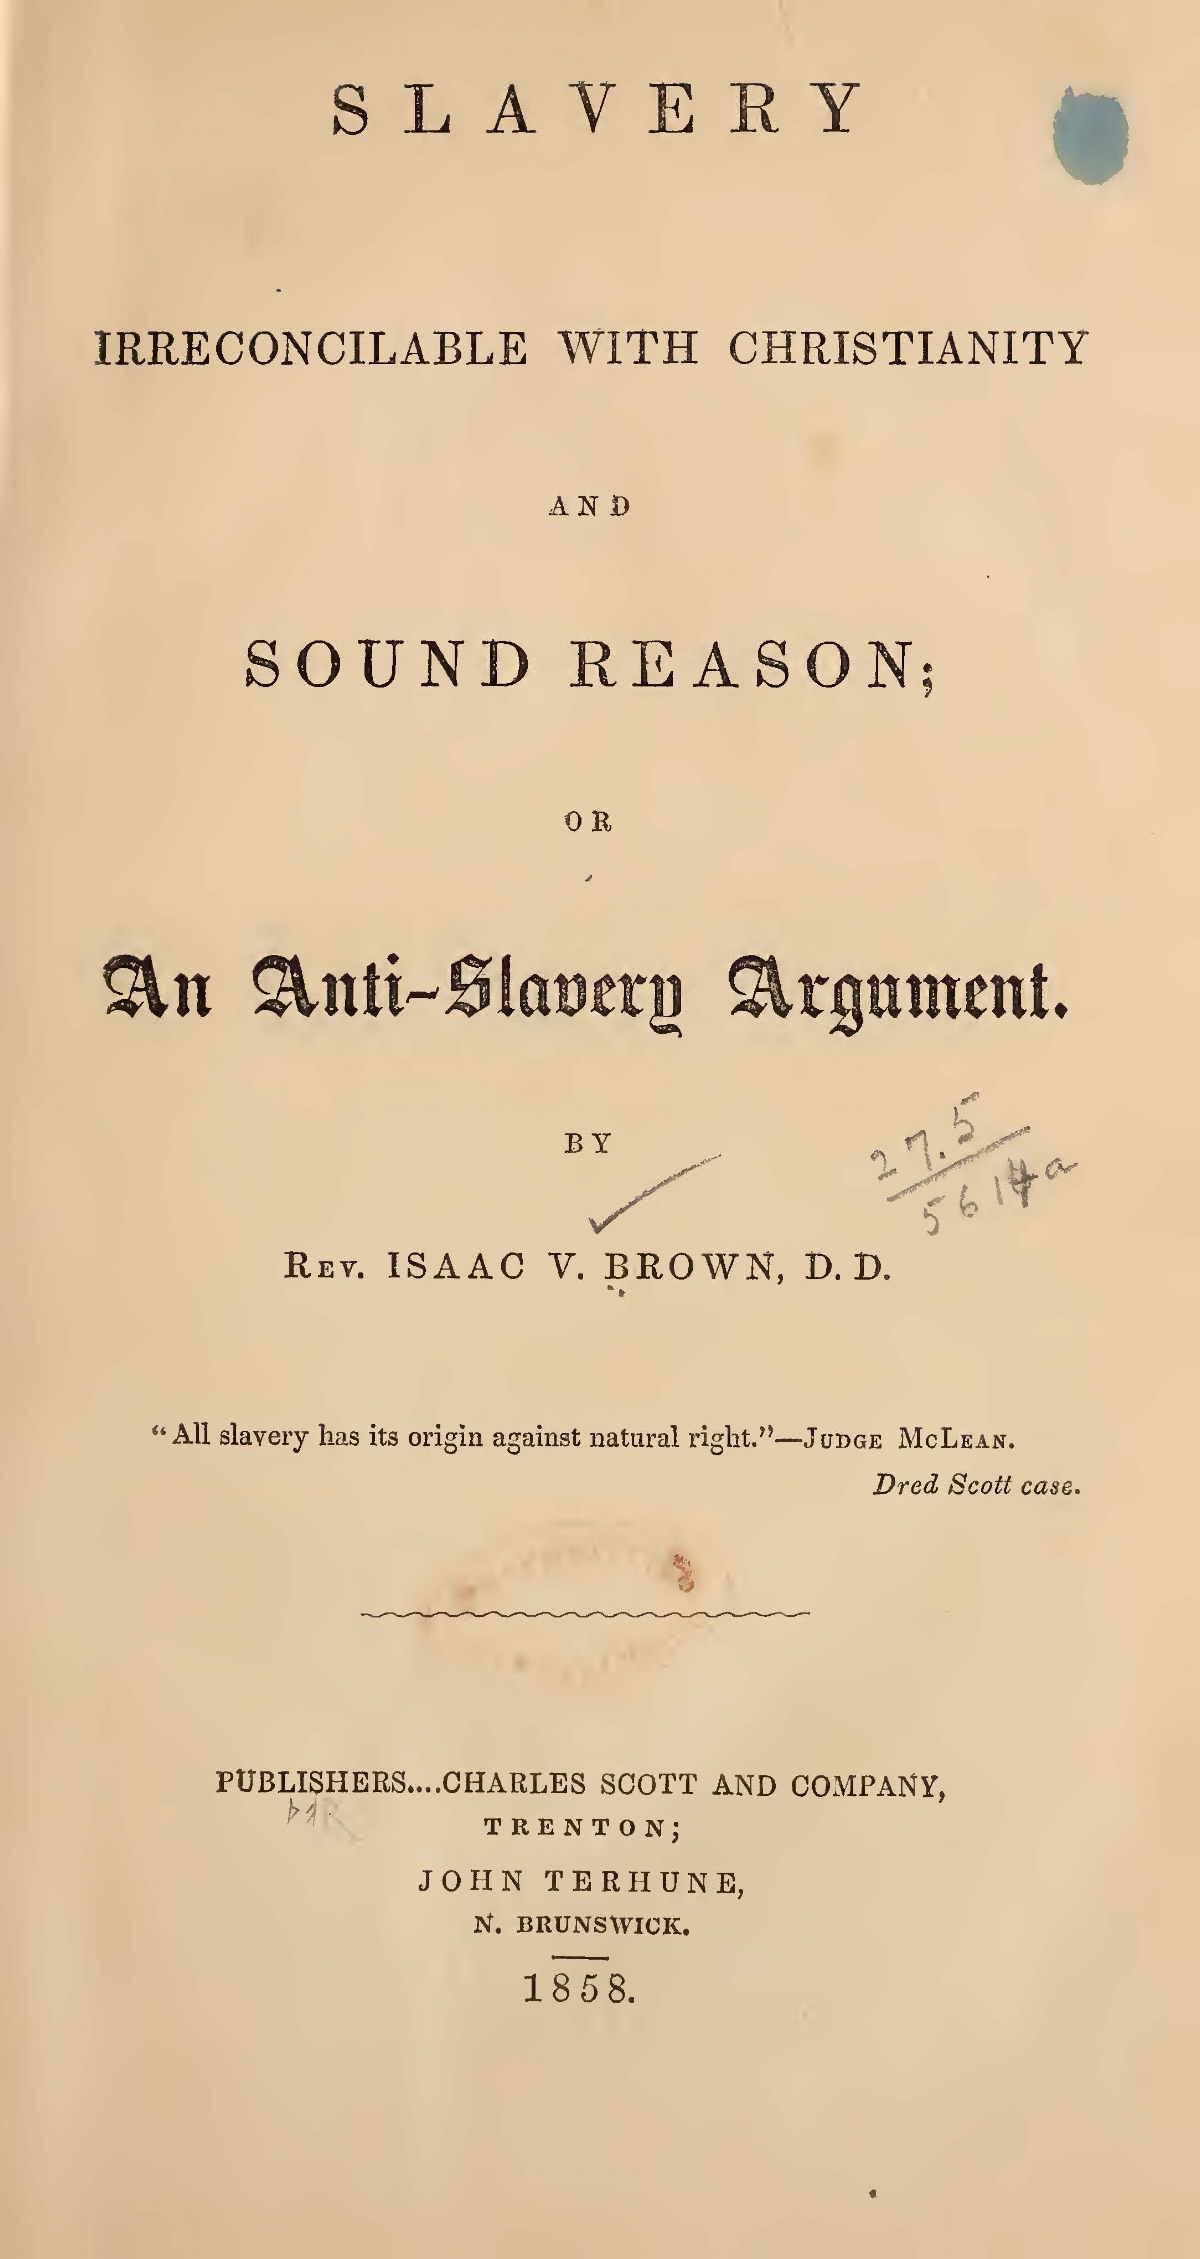 Brown, Isaac Van Arsdale, Slavery Irreconcilable With Christianity and Sound Reason Title Page.jpg